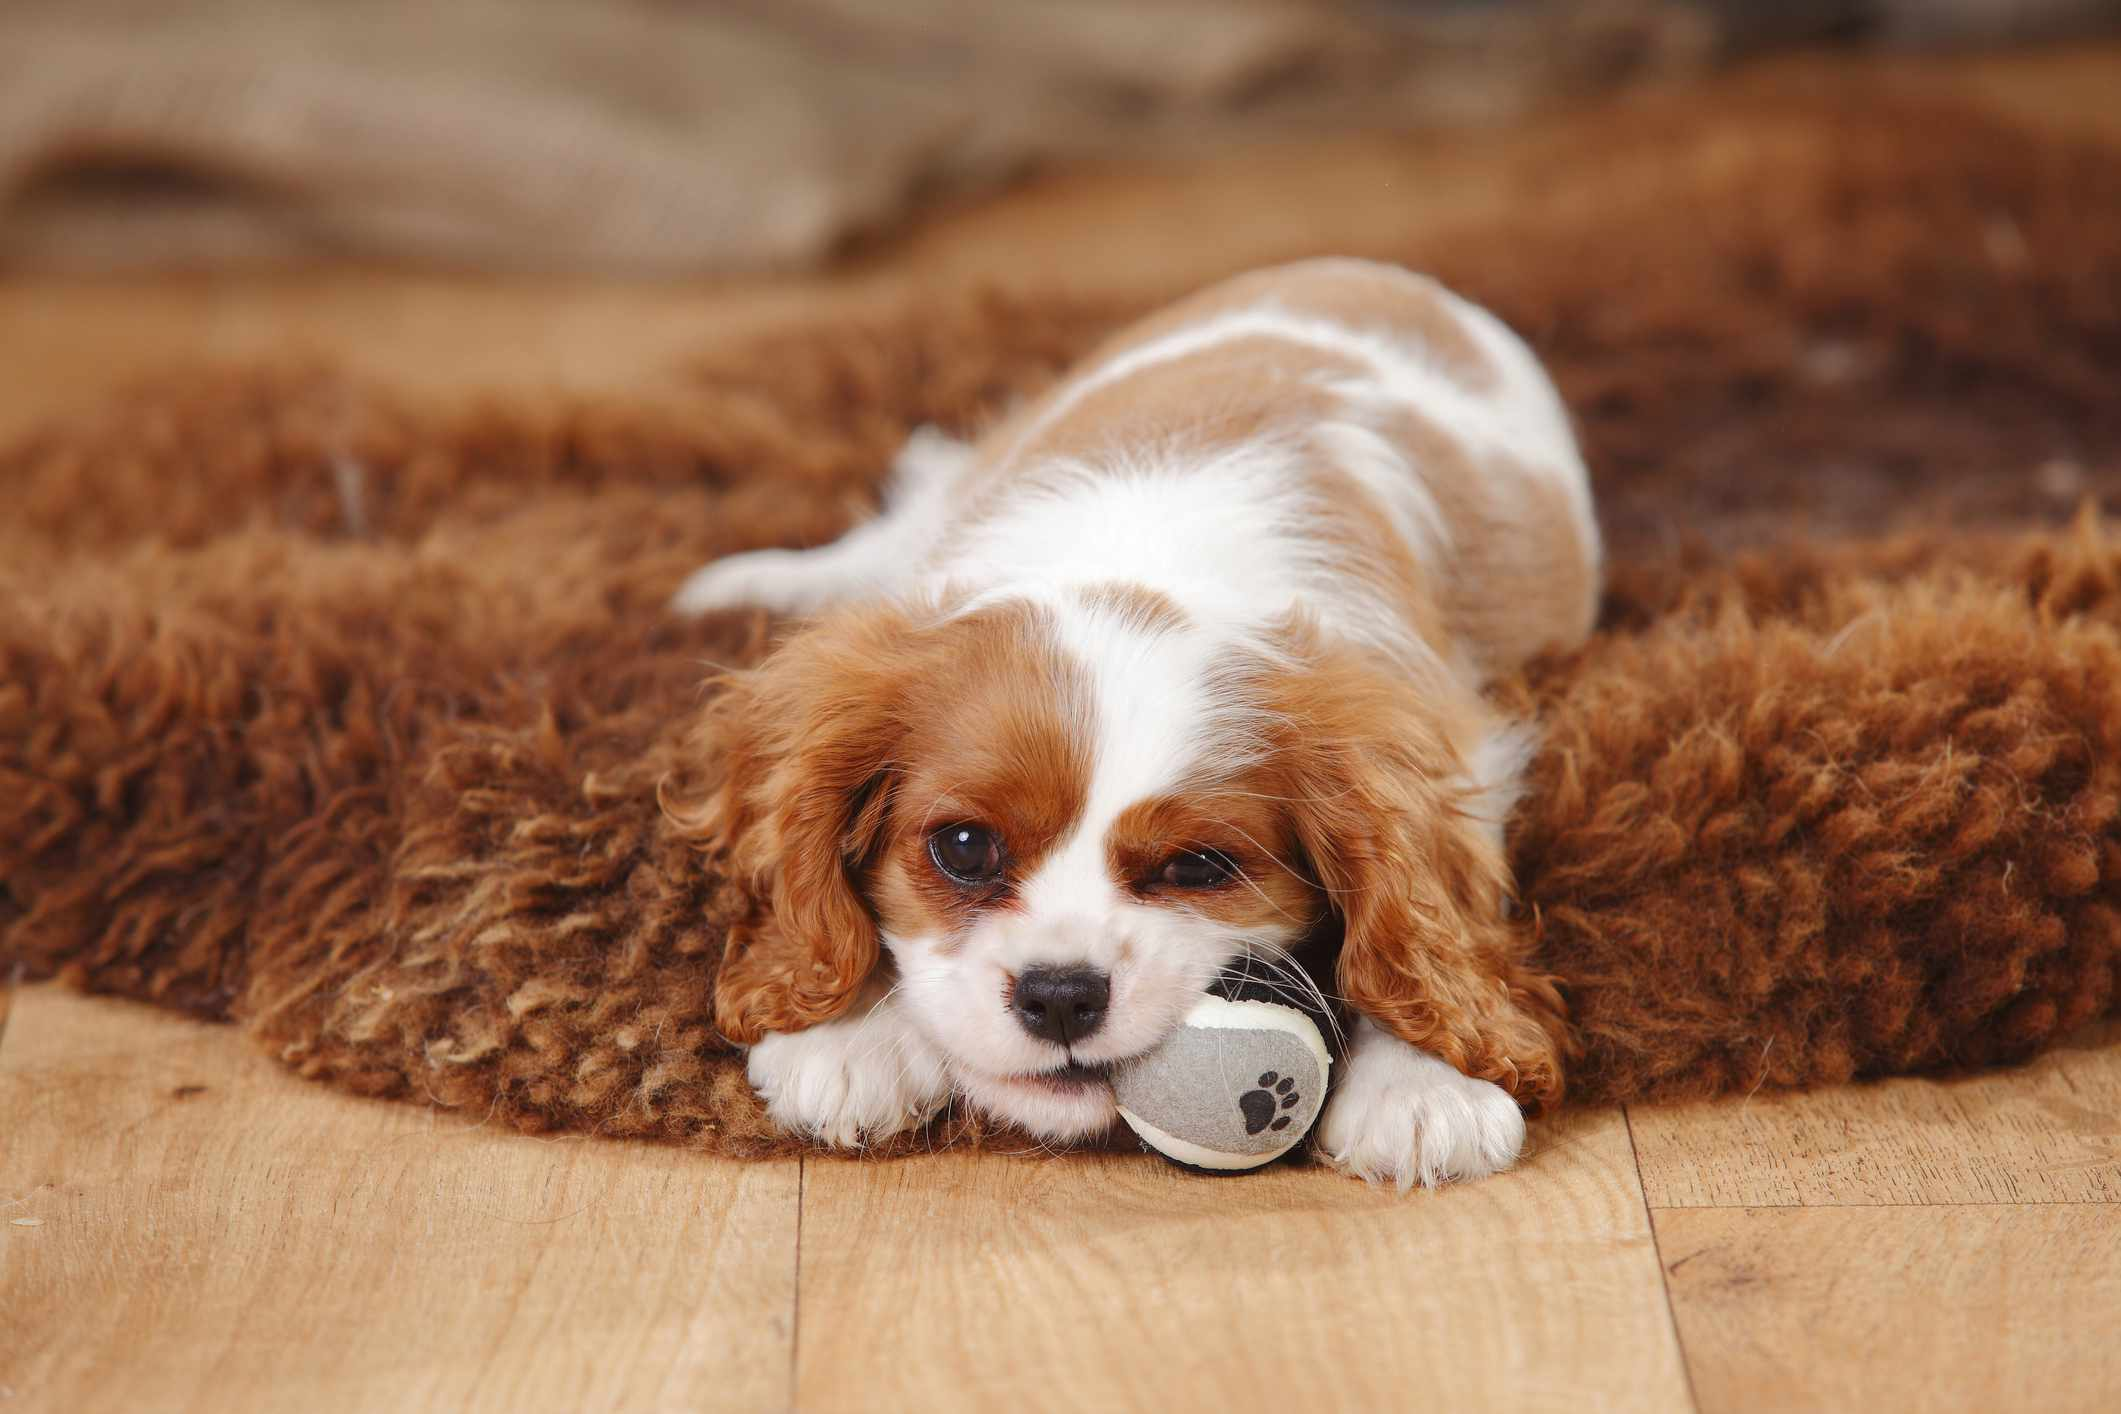 Brown and white Cavalier King Charles Spaniel chewing on tennis ball on top of rug.